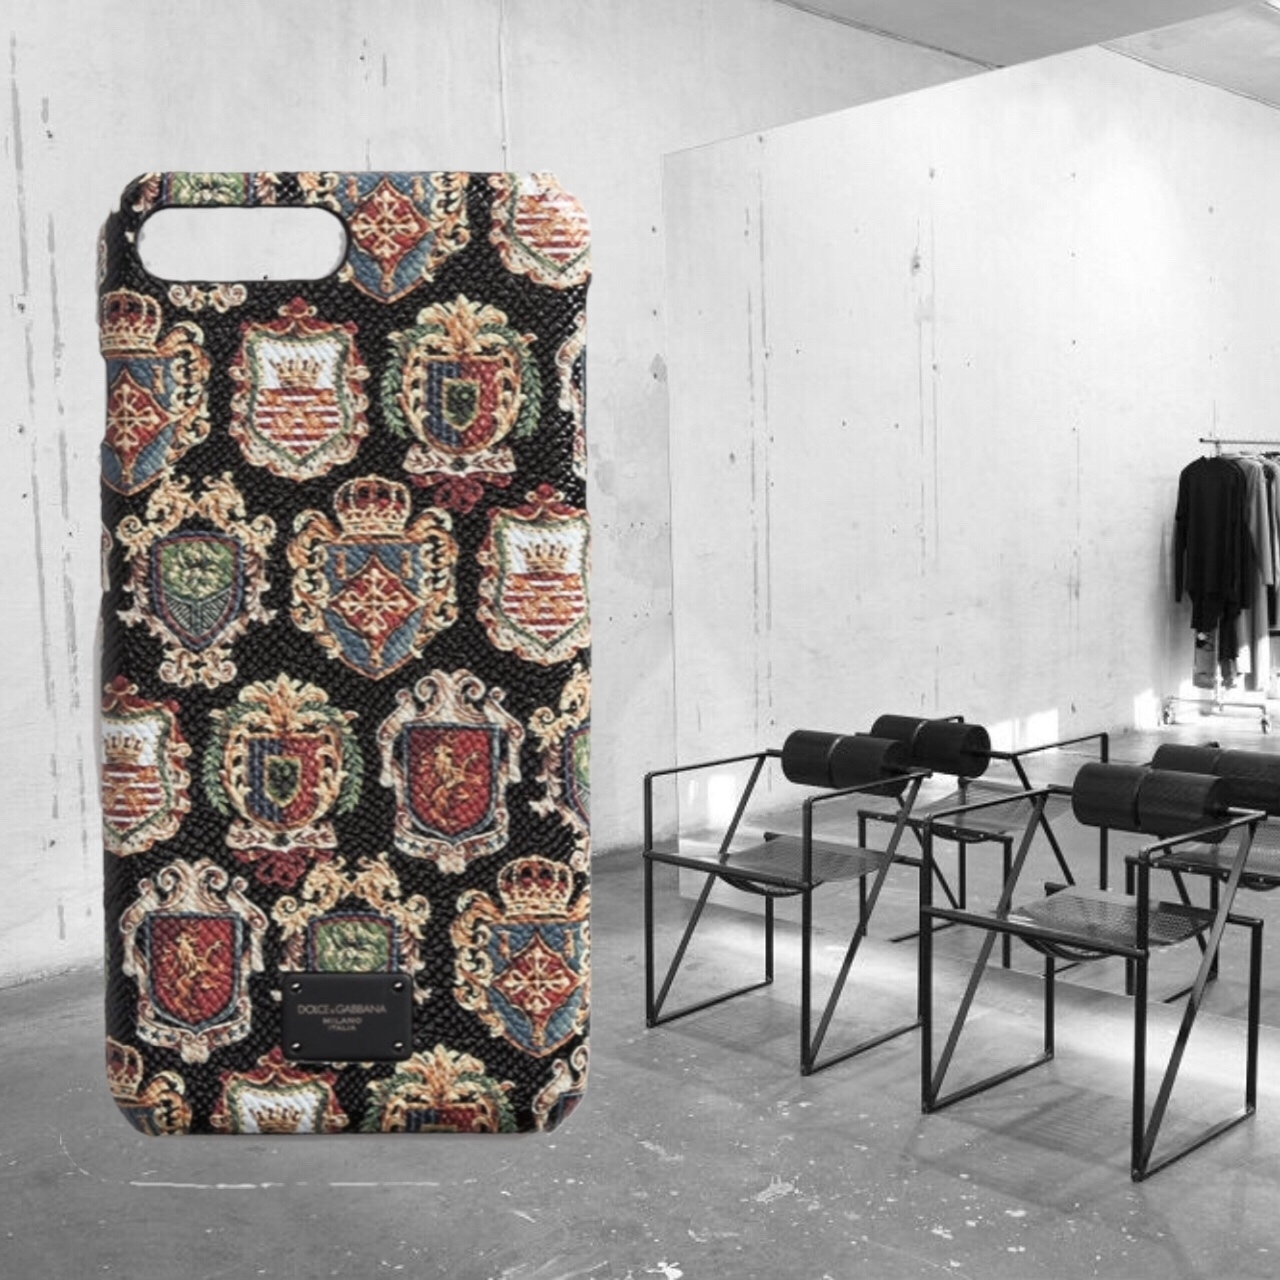 【Dolce & Gabbana】Coat Of Arms Print IPhone 7 Case